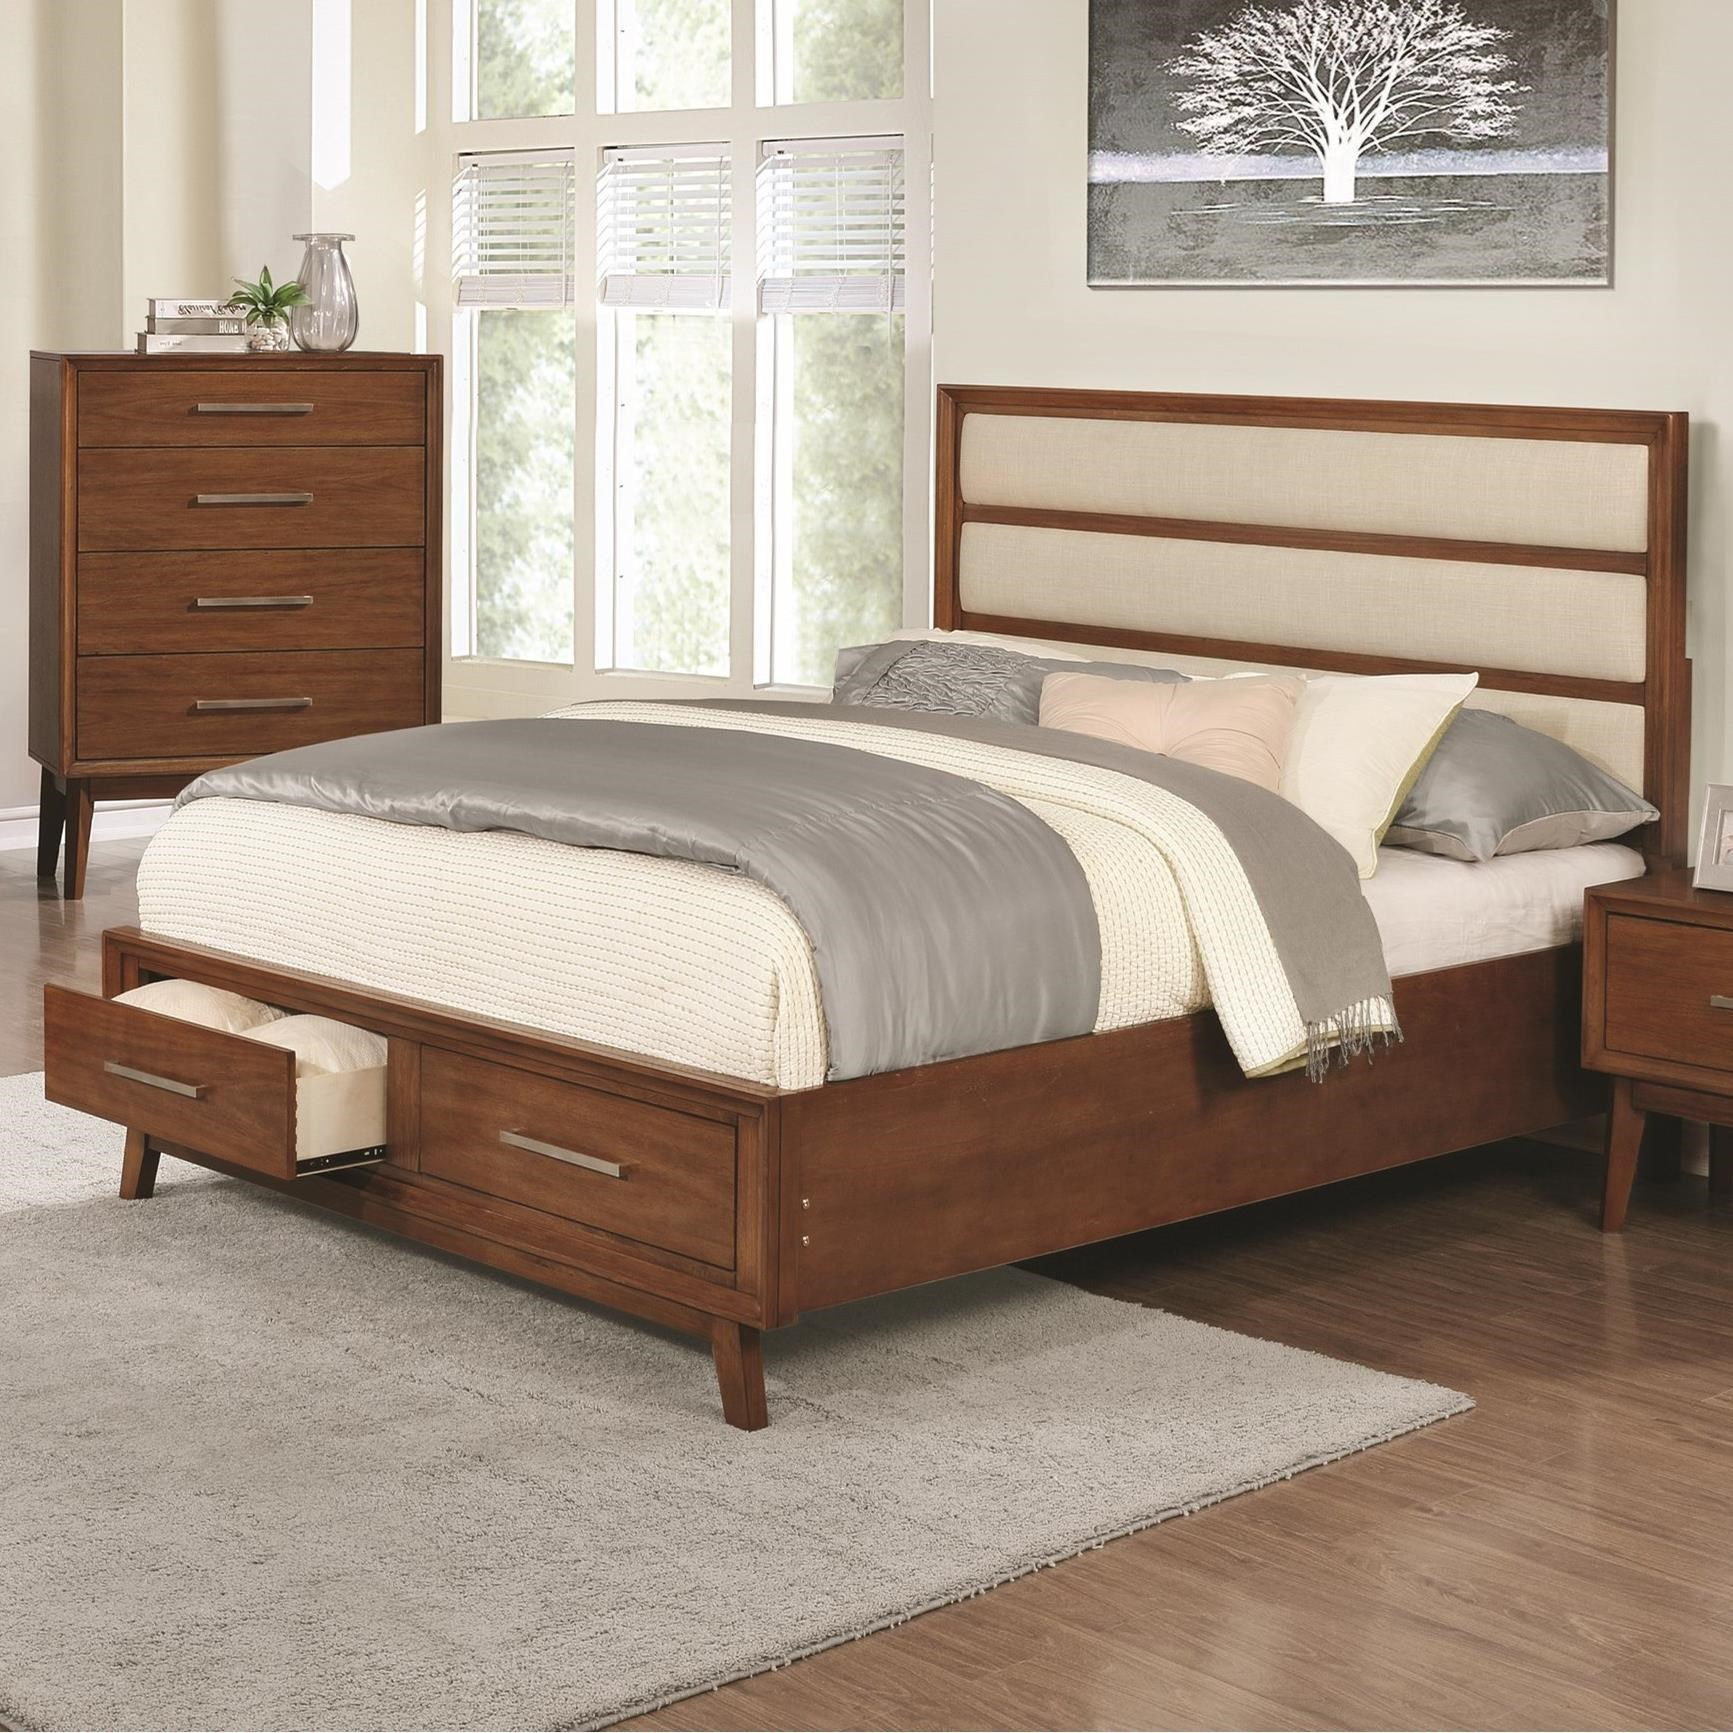 Banning Upholstered Panel California King Bed With 2